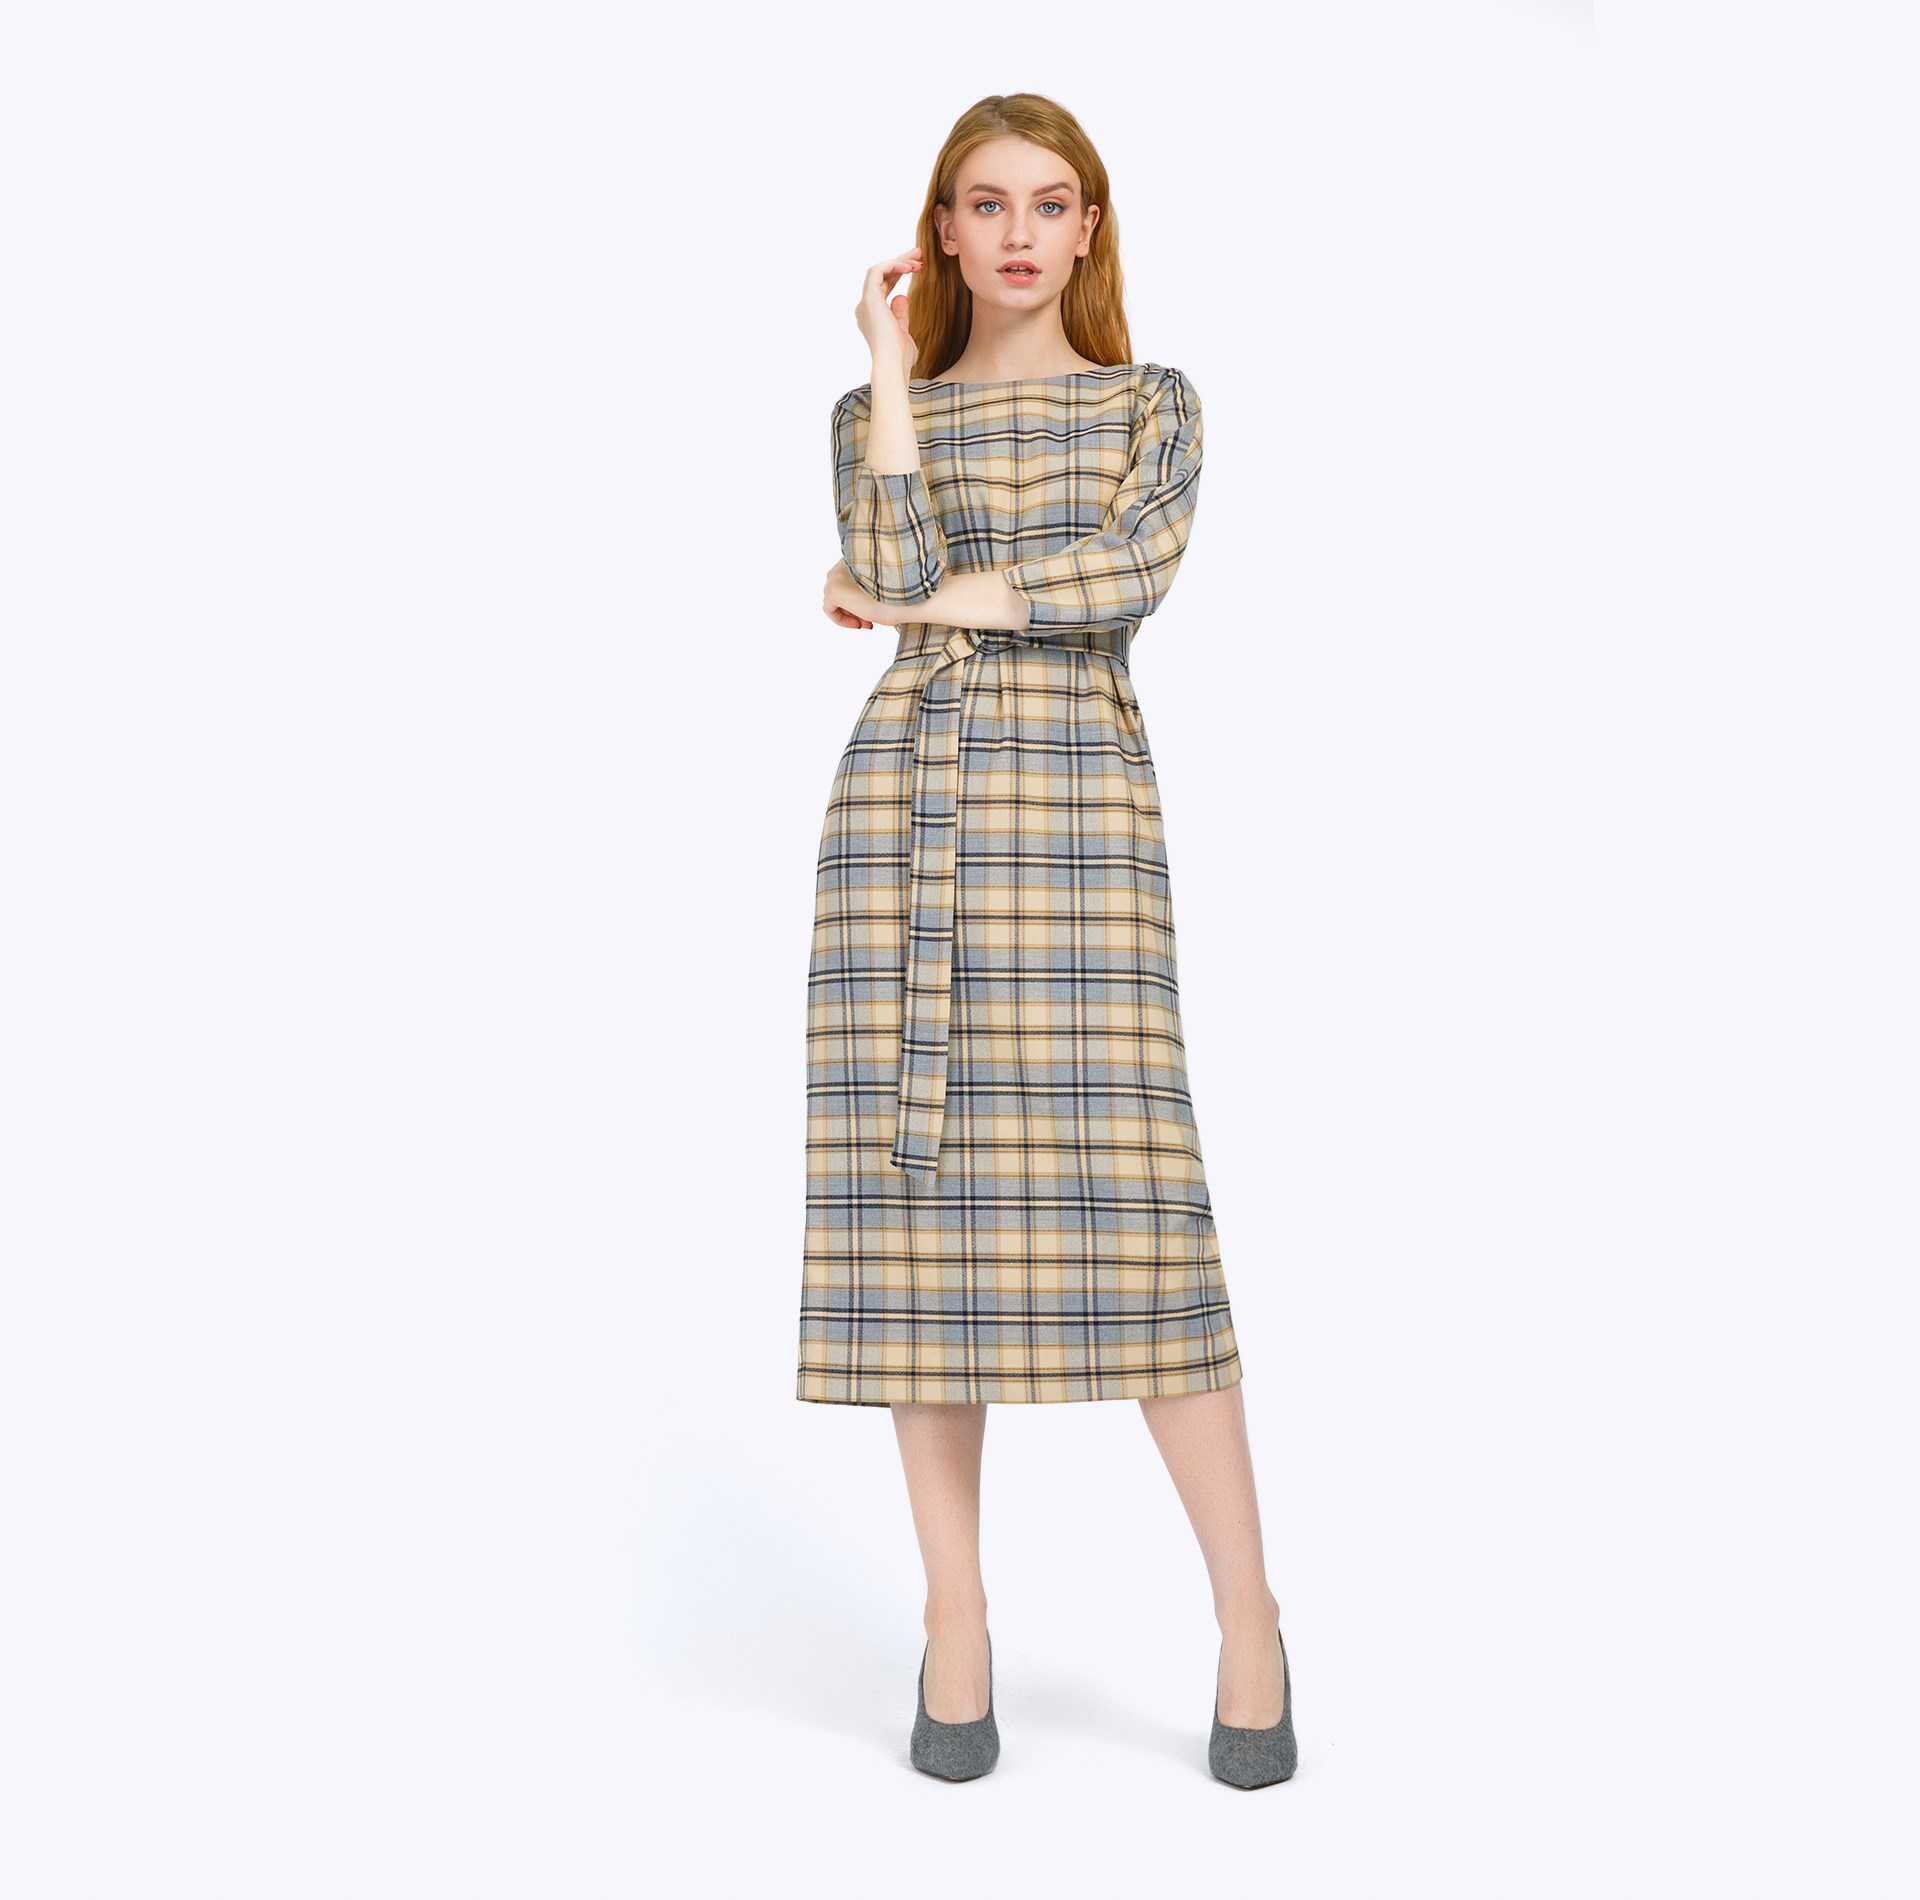 Midi dress plaid sleeveless wrap front midi dress with irregular hem